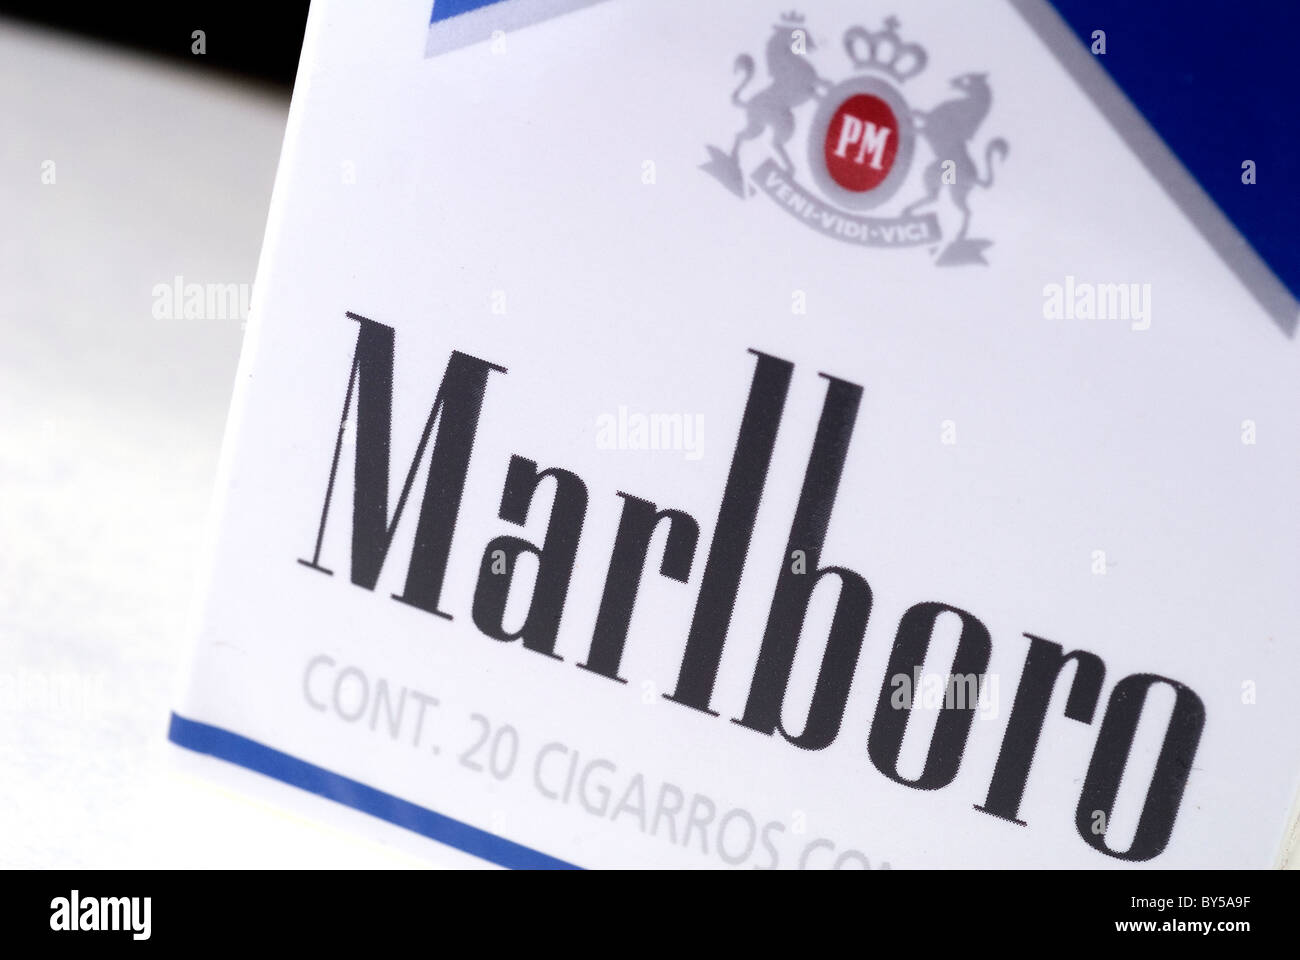 Cheapest Monte Carlo cigarettes in United Kingdom